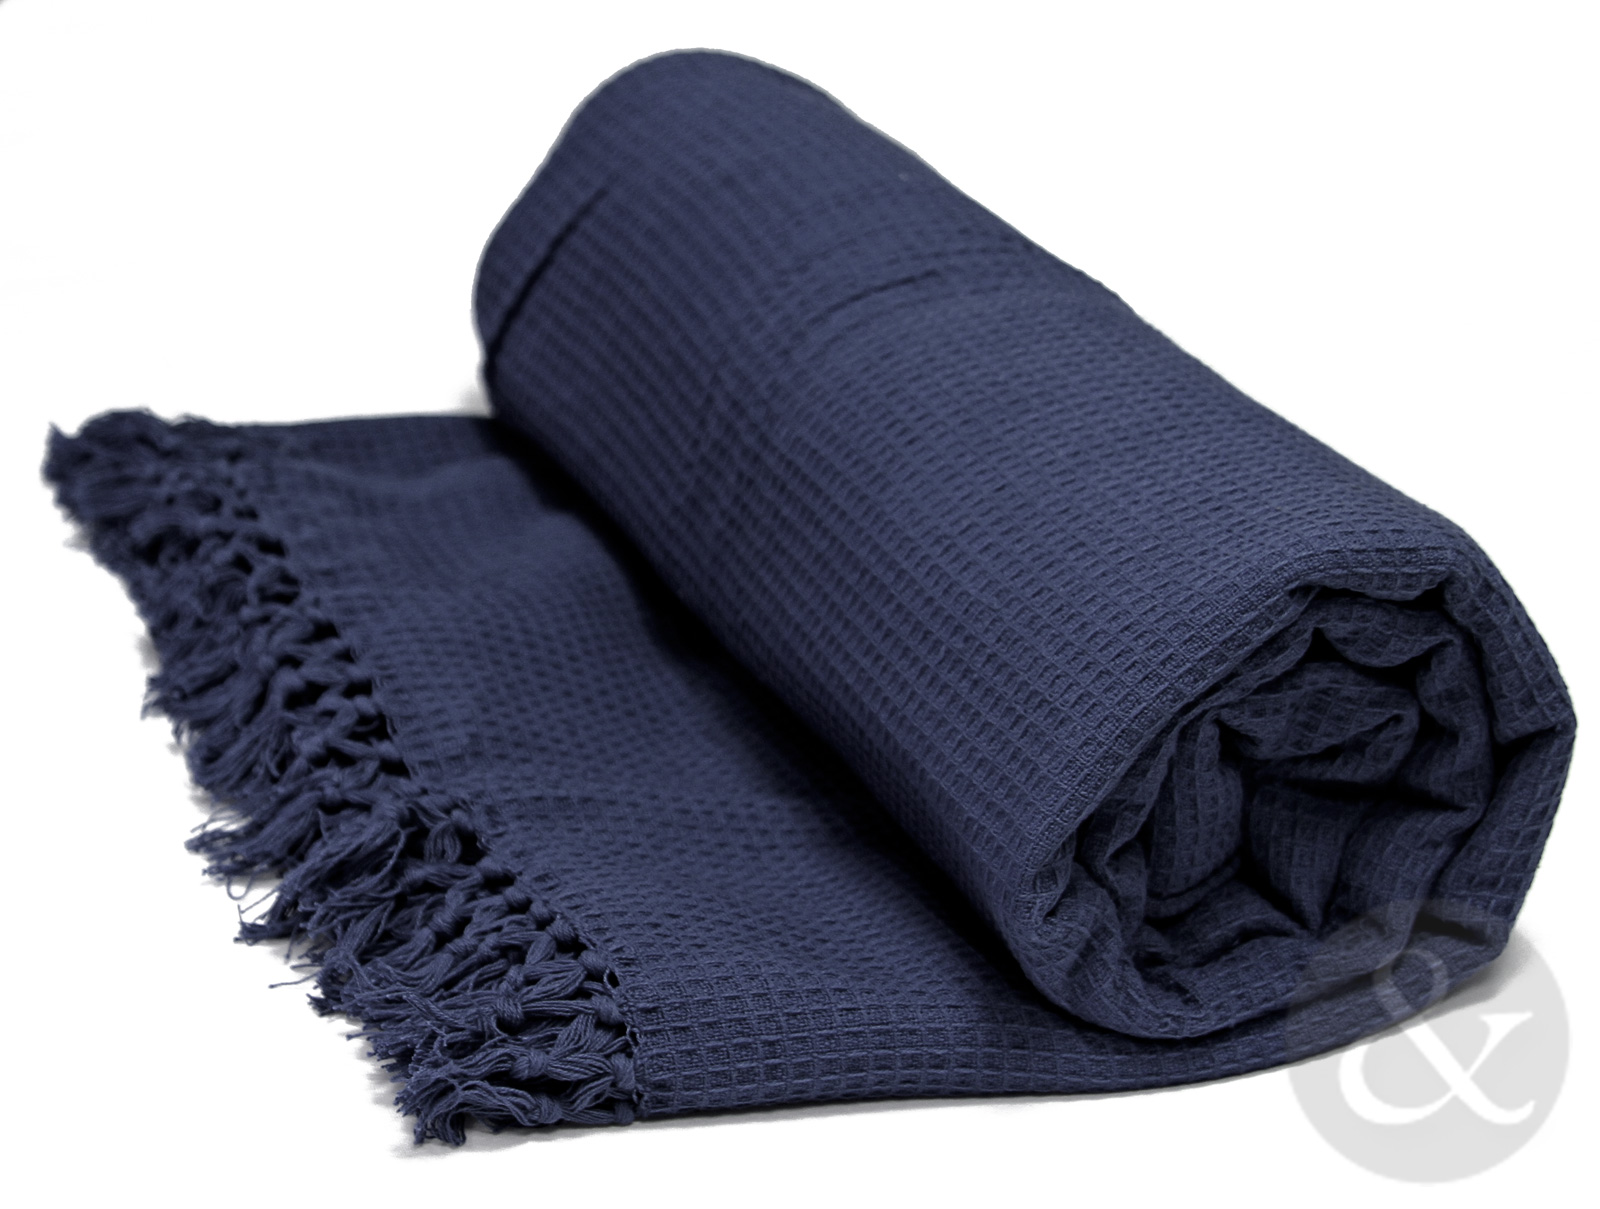 Honeycomb-100-Cotton-Throws-Extra-Large-Luxury-Thermal-Throw-Over-Blanket